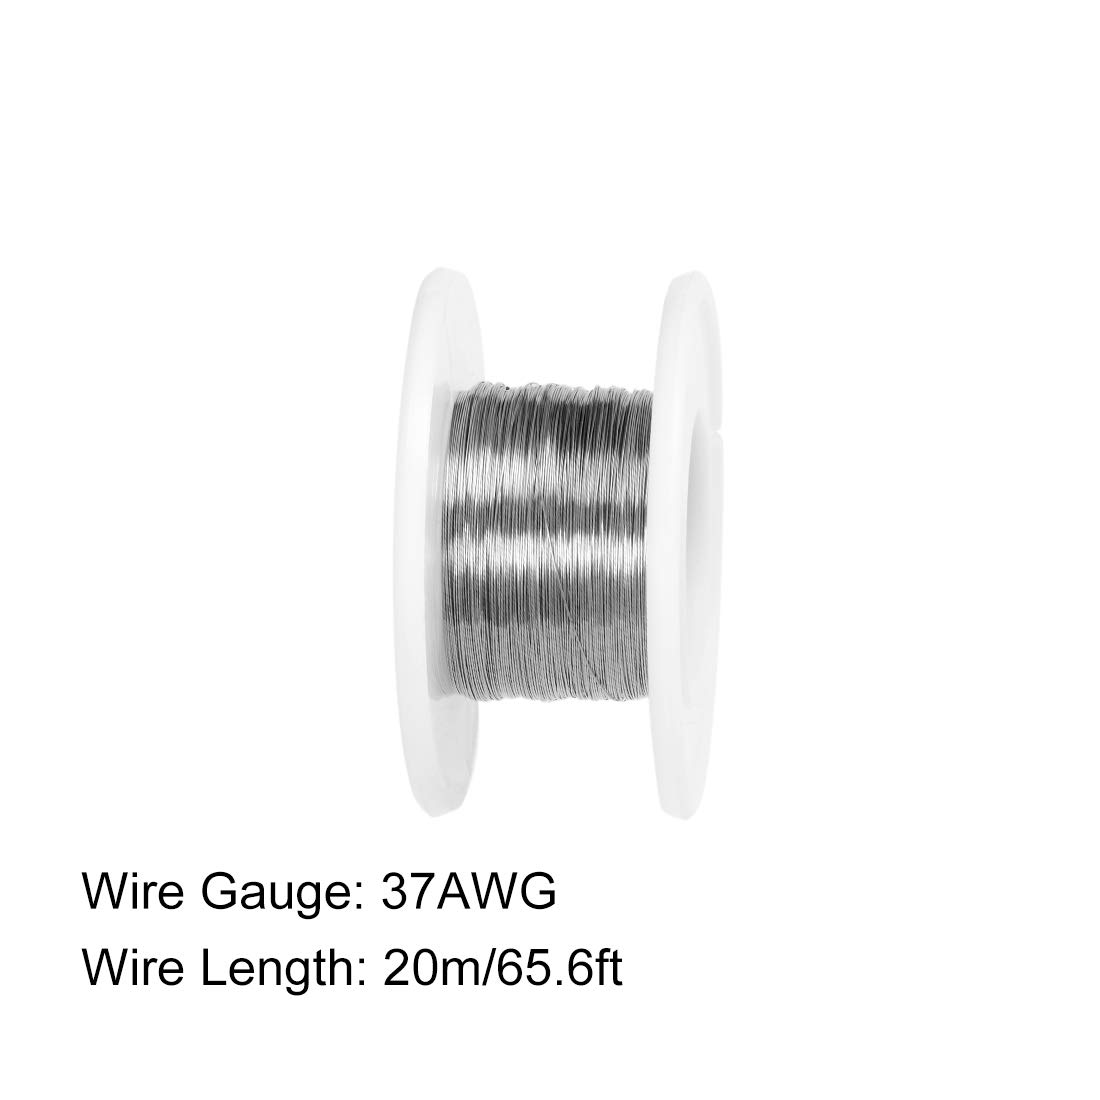 uxcell 0.12mm 37AWG Heating Resistor Wire Nichrome Resistance Wires for Heating Elements 65.6ft